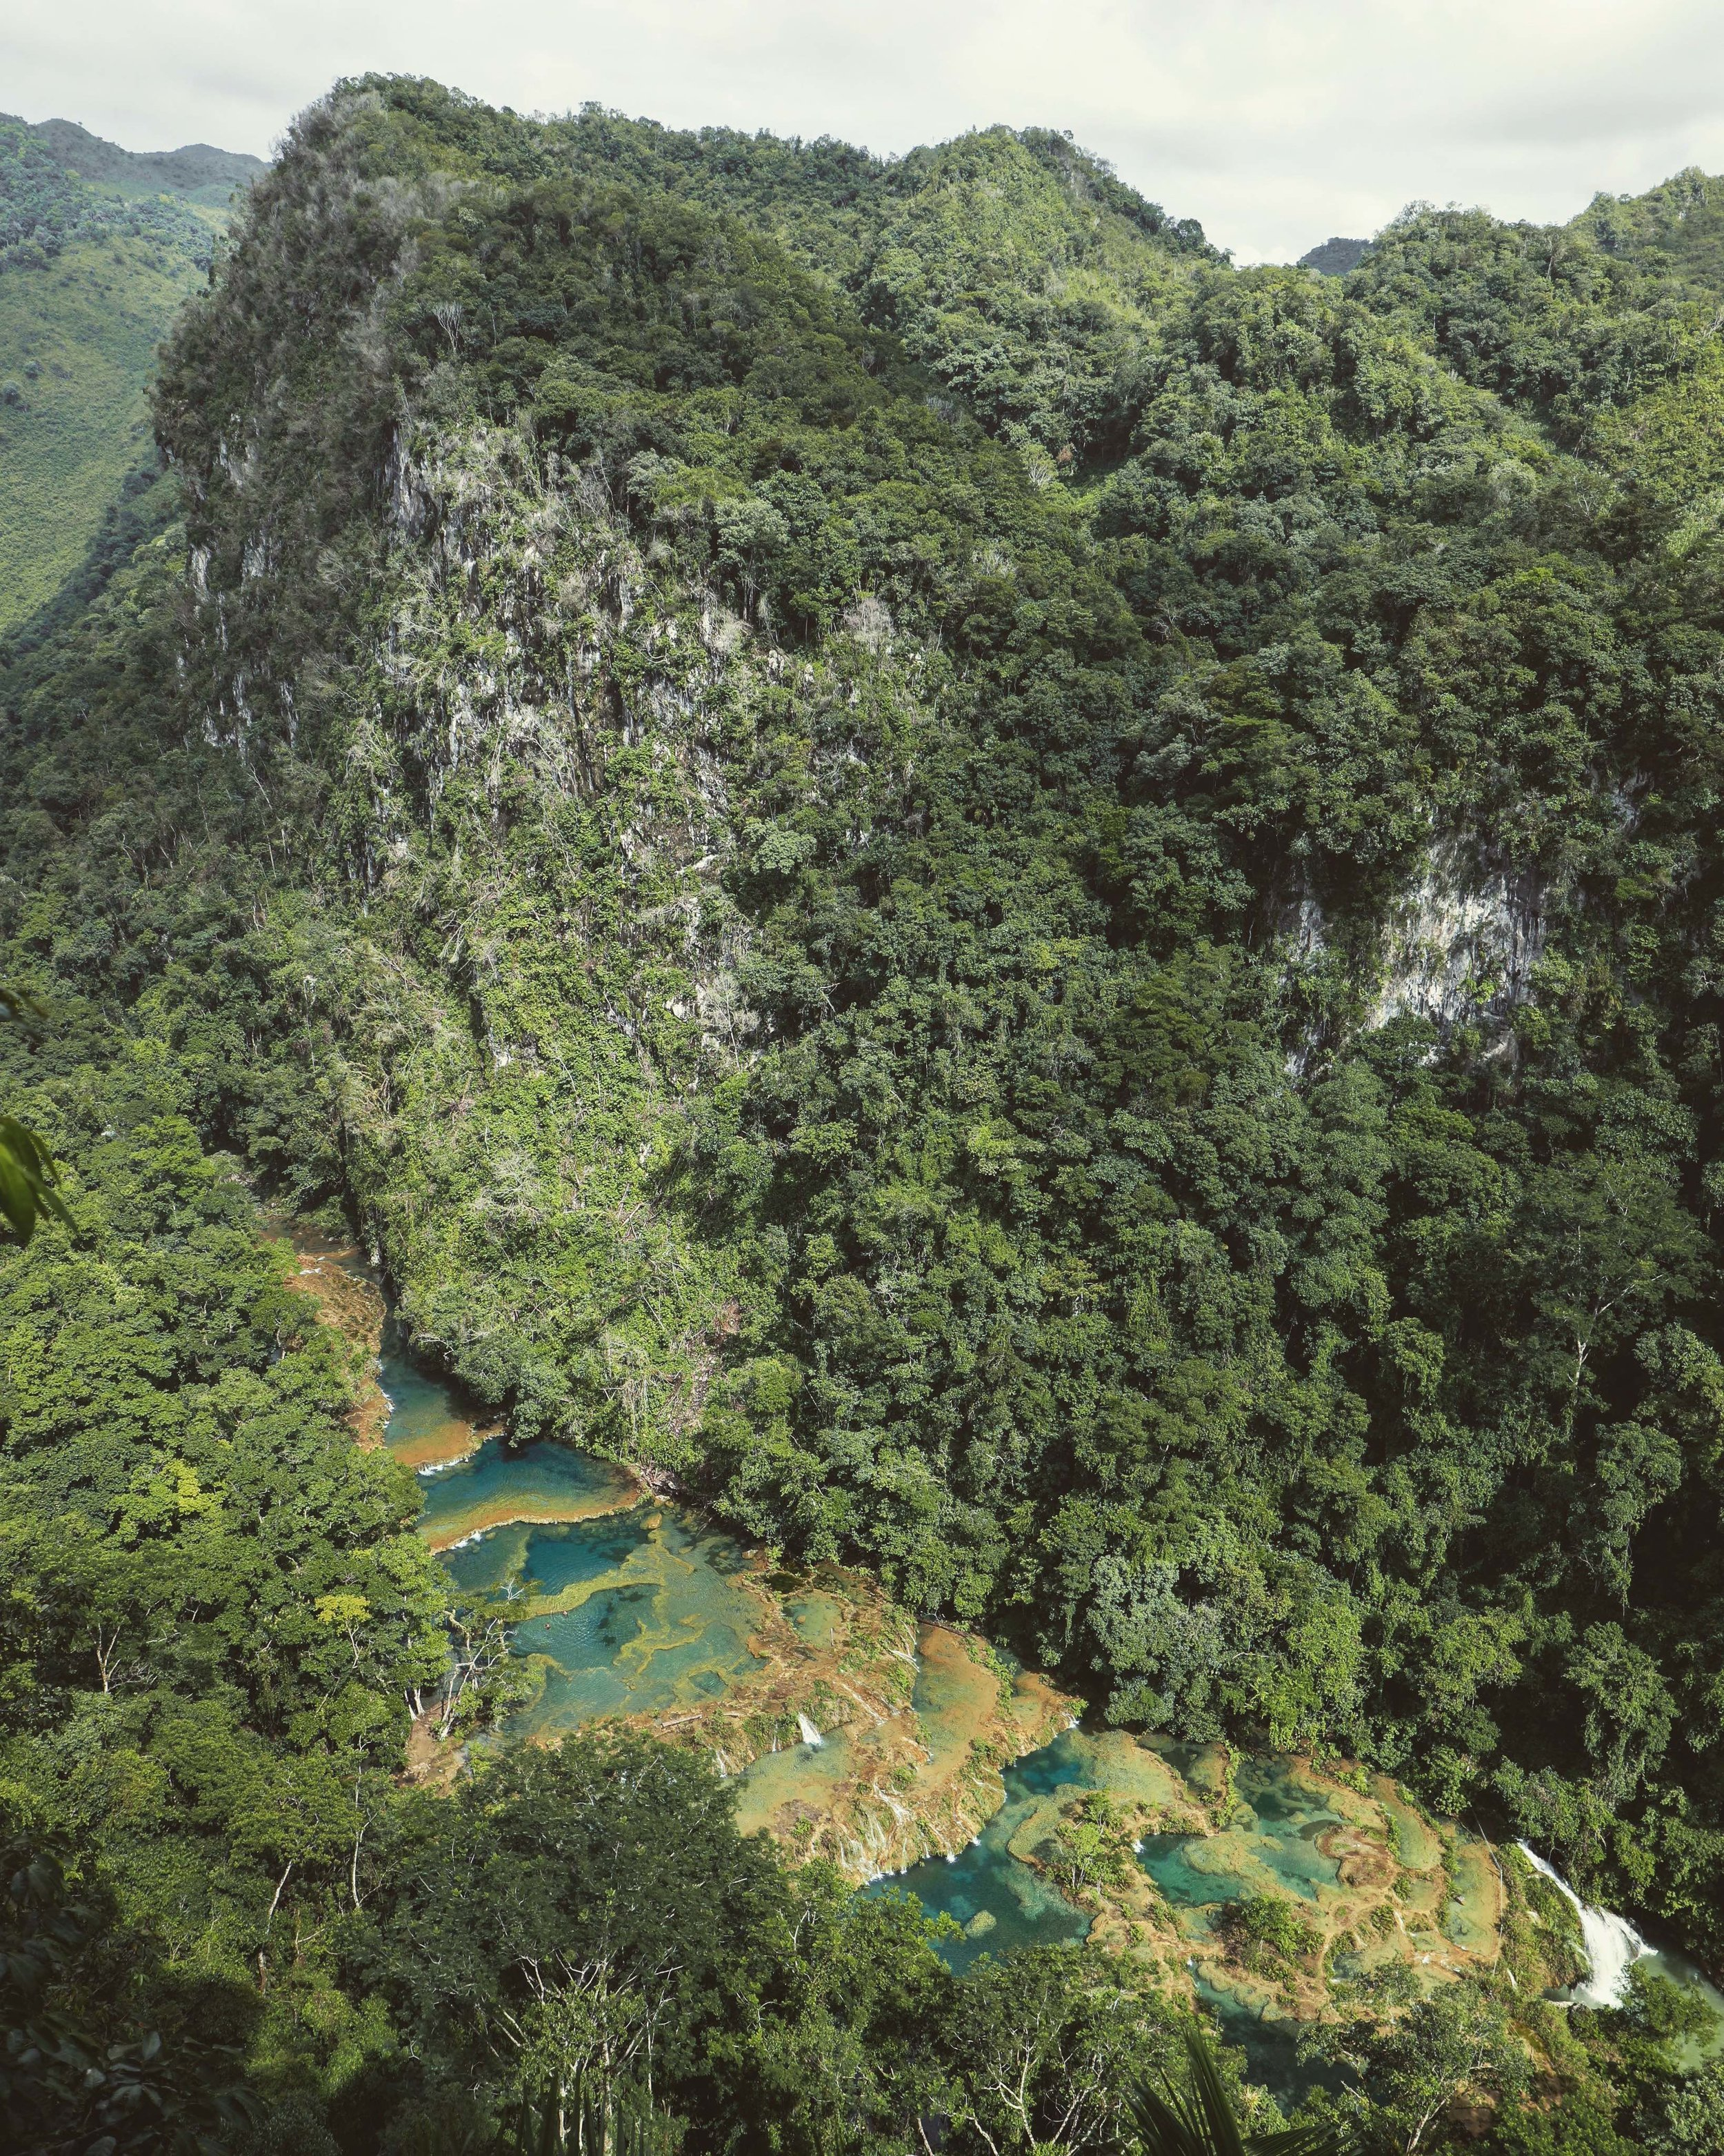 The view of Semuc Champey from the mirador.